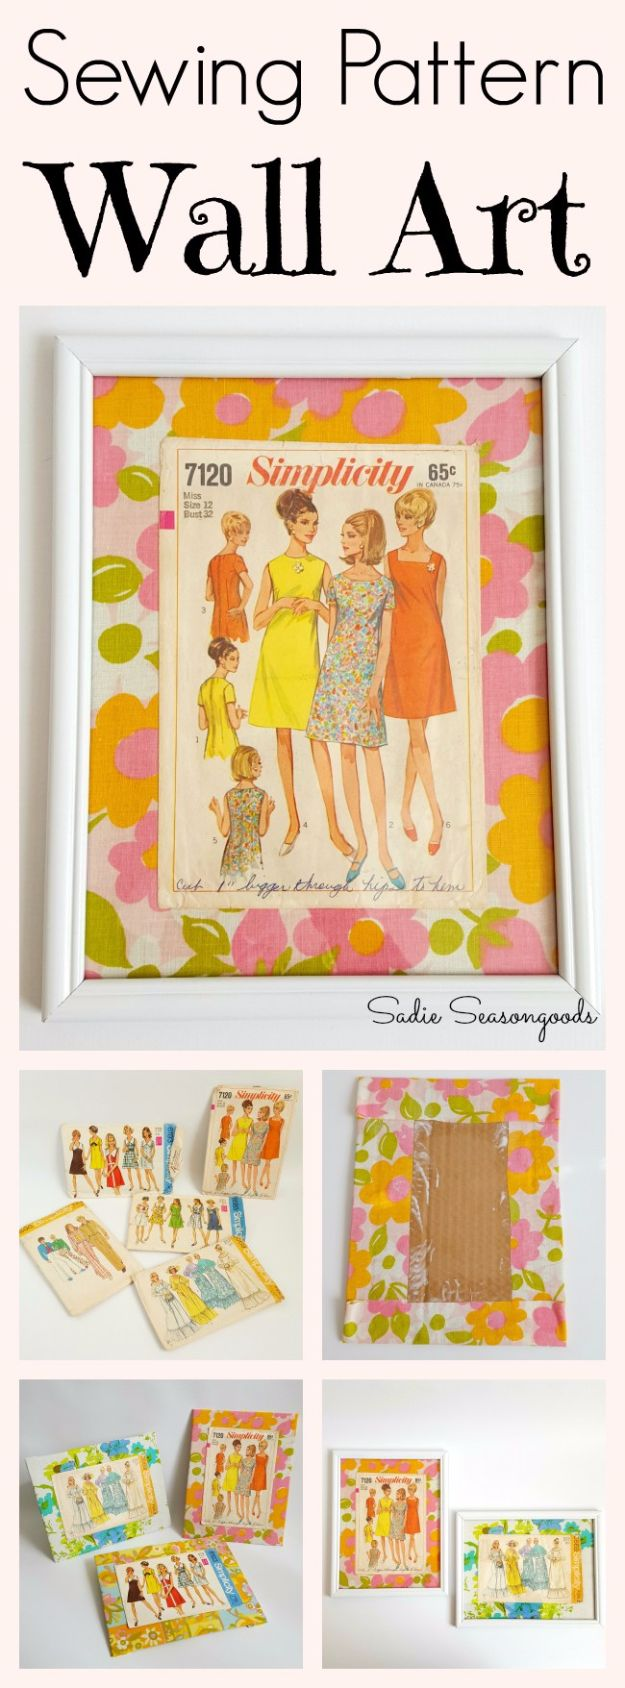 DIY Ideas With Old Picture Frames - Sewing Pattern Wall Art - Cool Crafts To Make With A Repurposed Picture Frame - Cheap Do It Yourself Gifts and Home Decor on A Budget - Fun Ideas for Decorating Your House and Room http://diyjoy.com/diy-ideas-picture-frames